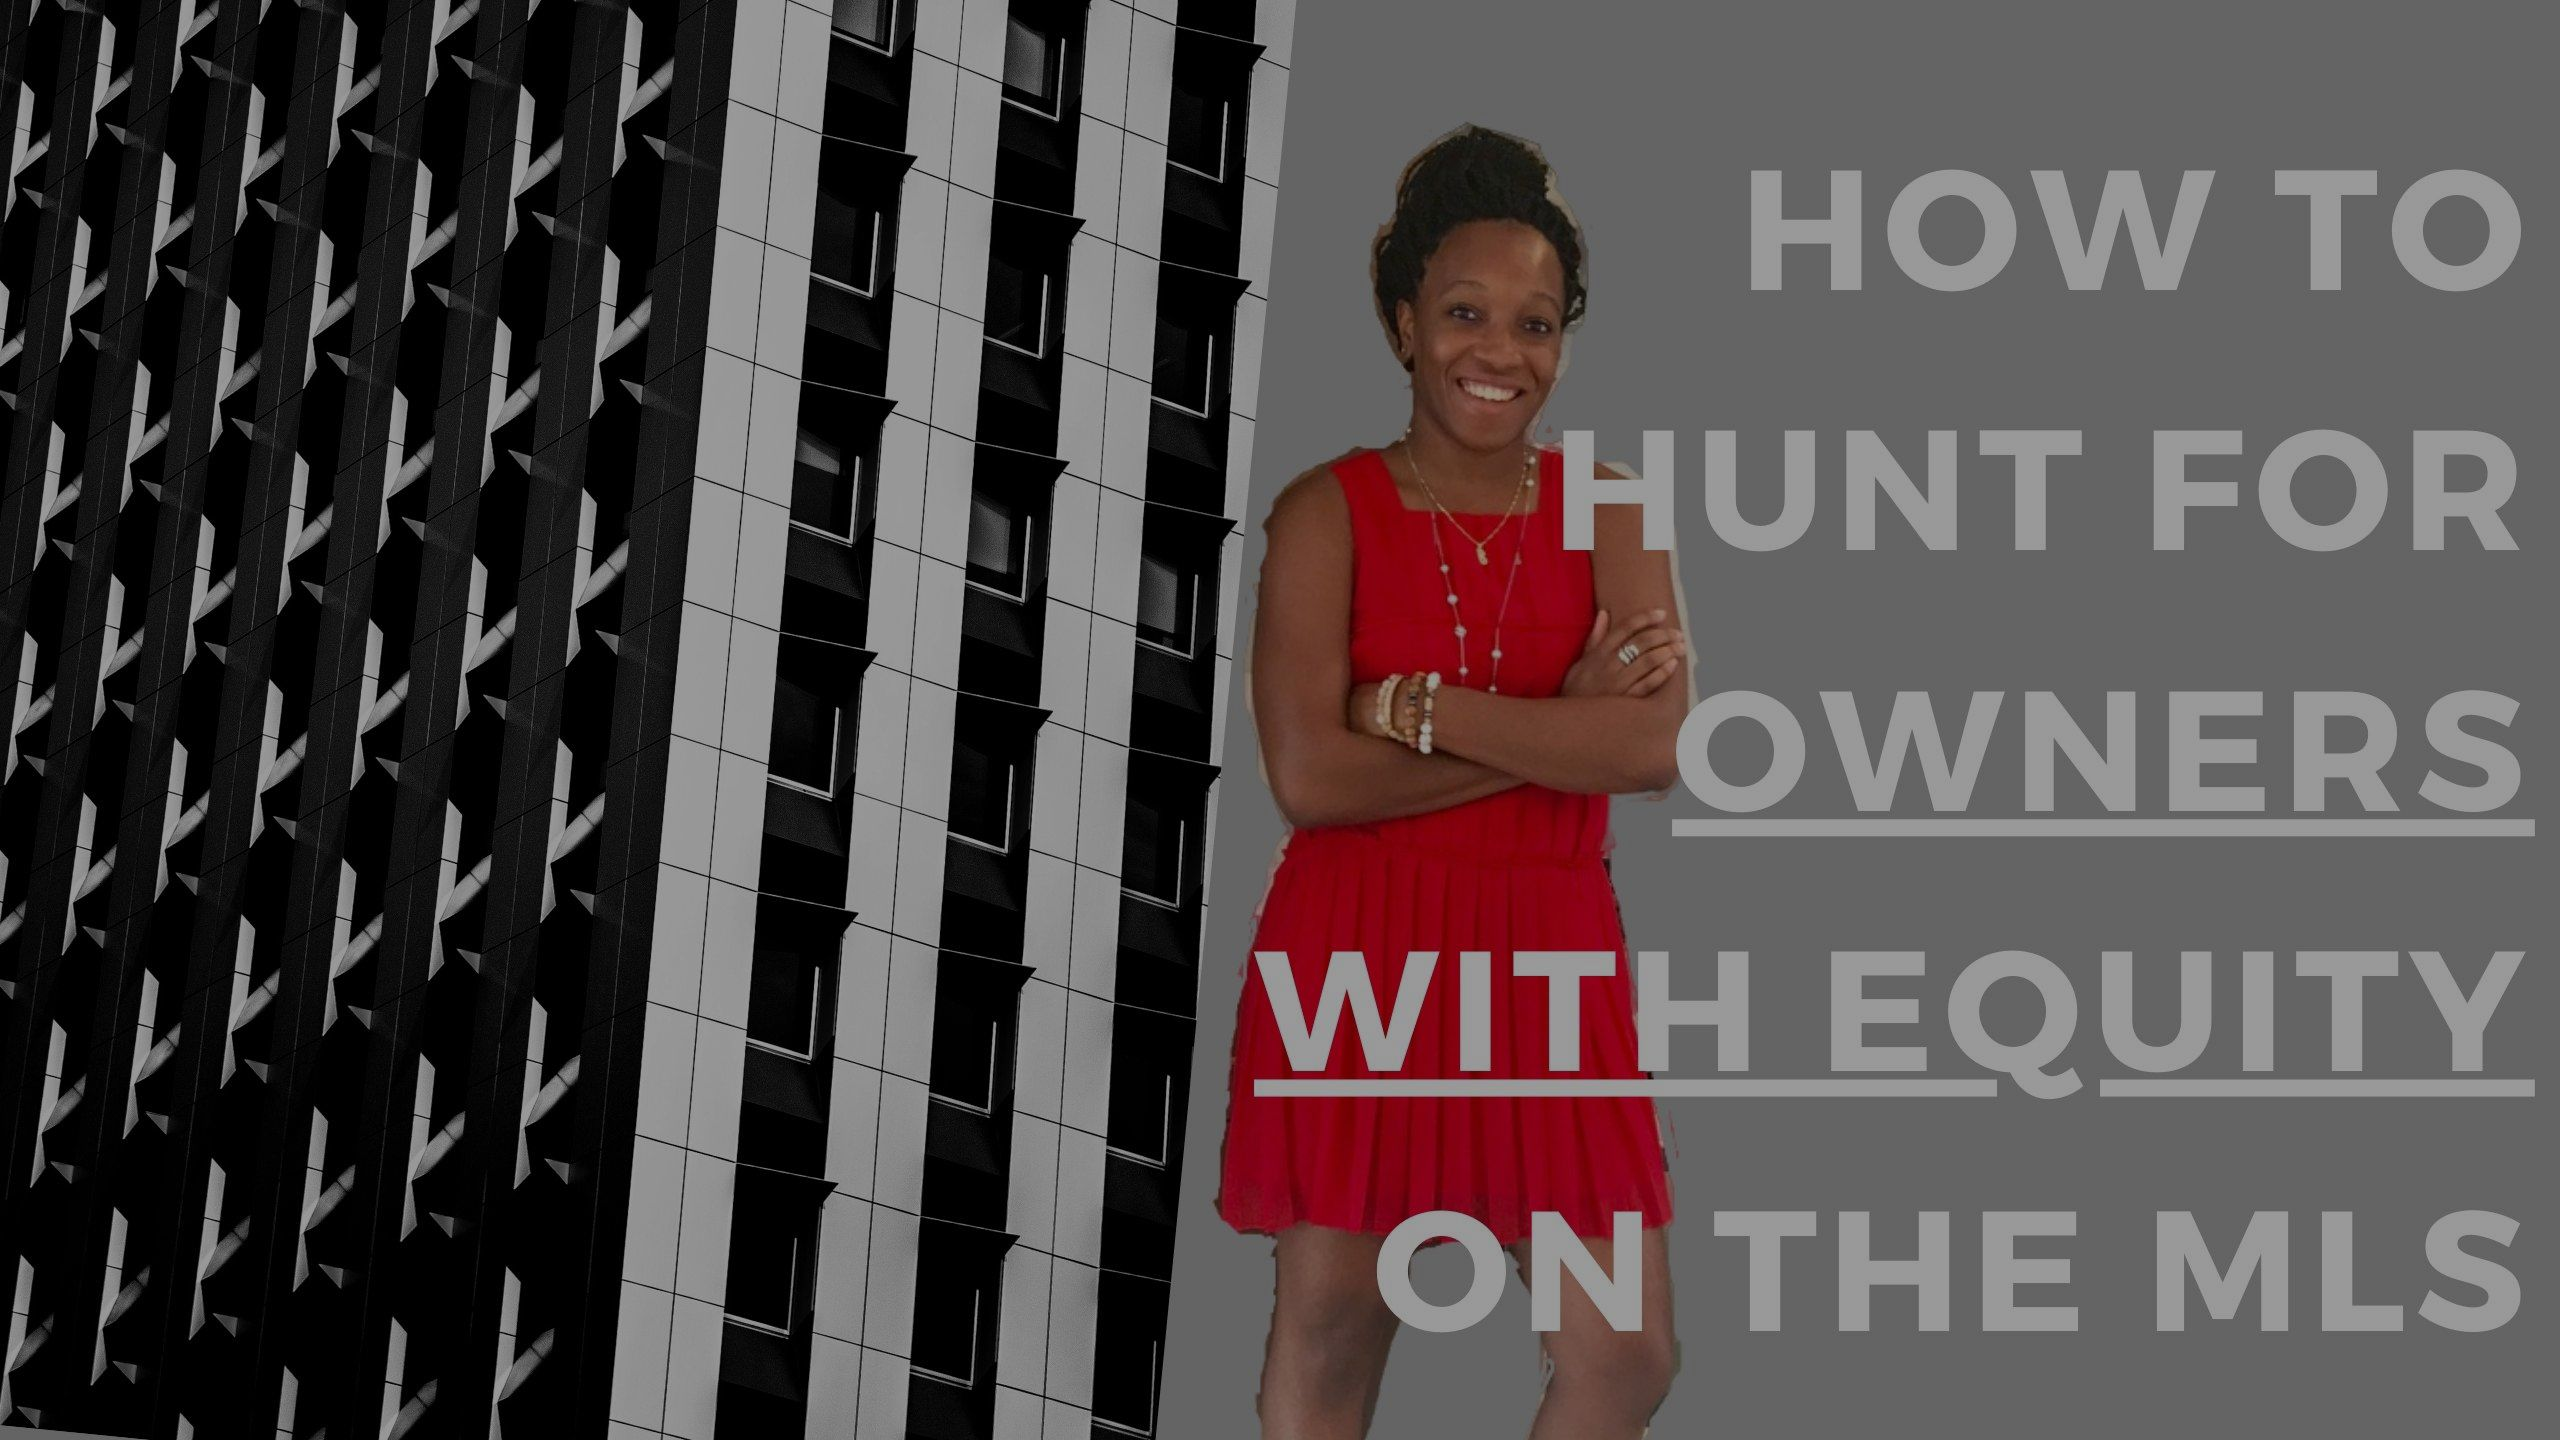 How to Hunt for Owners with Equity on the MLS